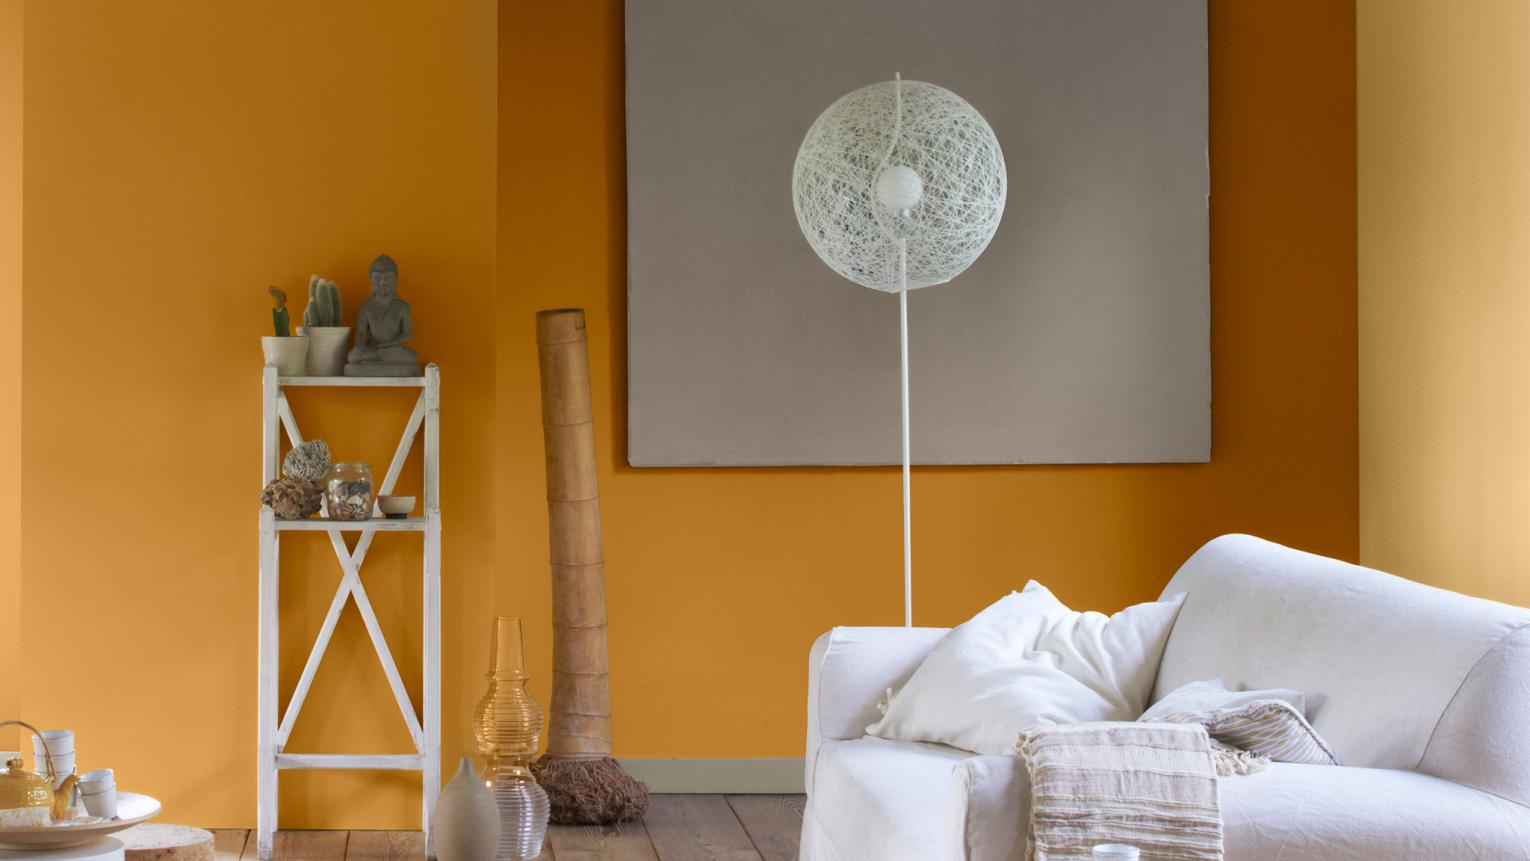 If it's warmth you're after, don't be afraid to use light terracotta or oranges – a sunny hue can brighten and warm a dark, dingy space.